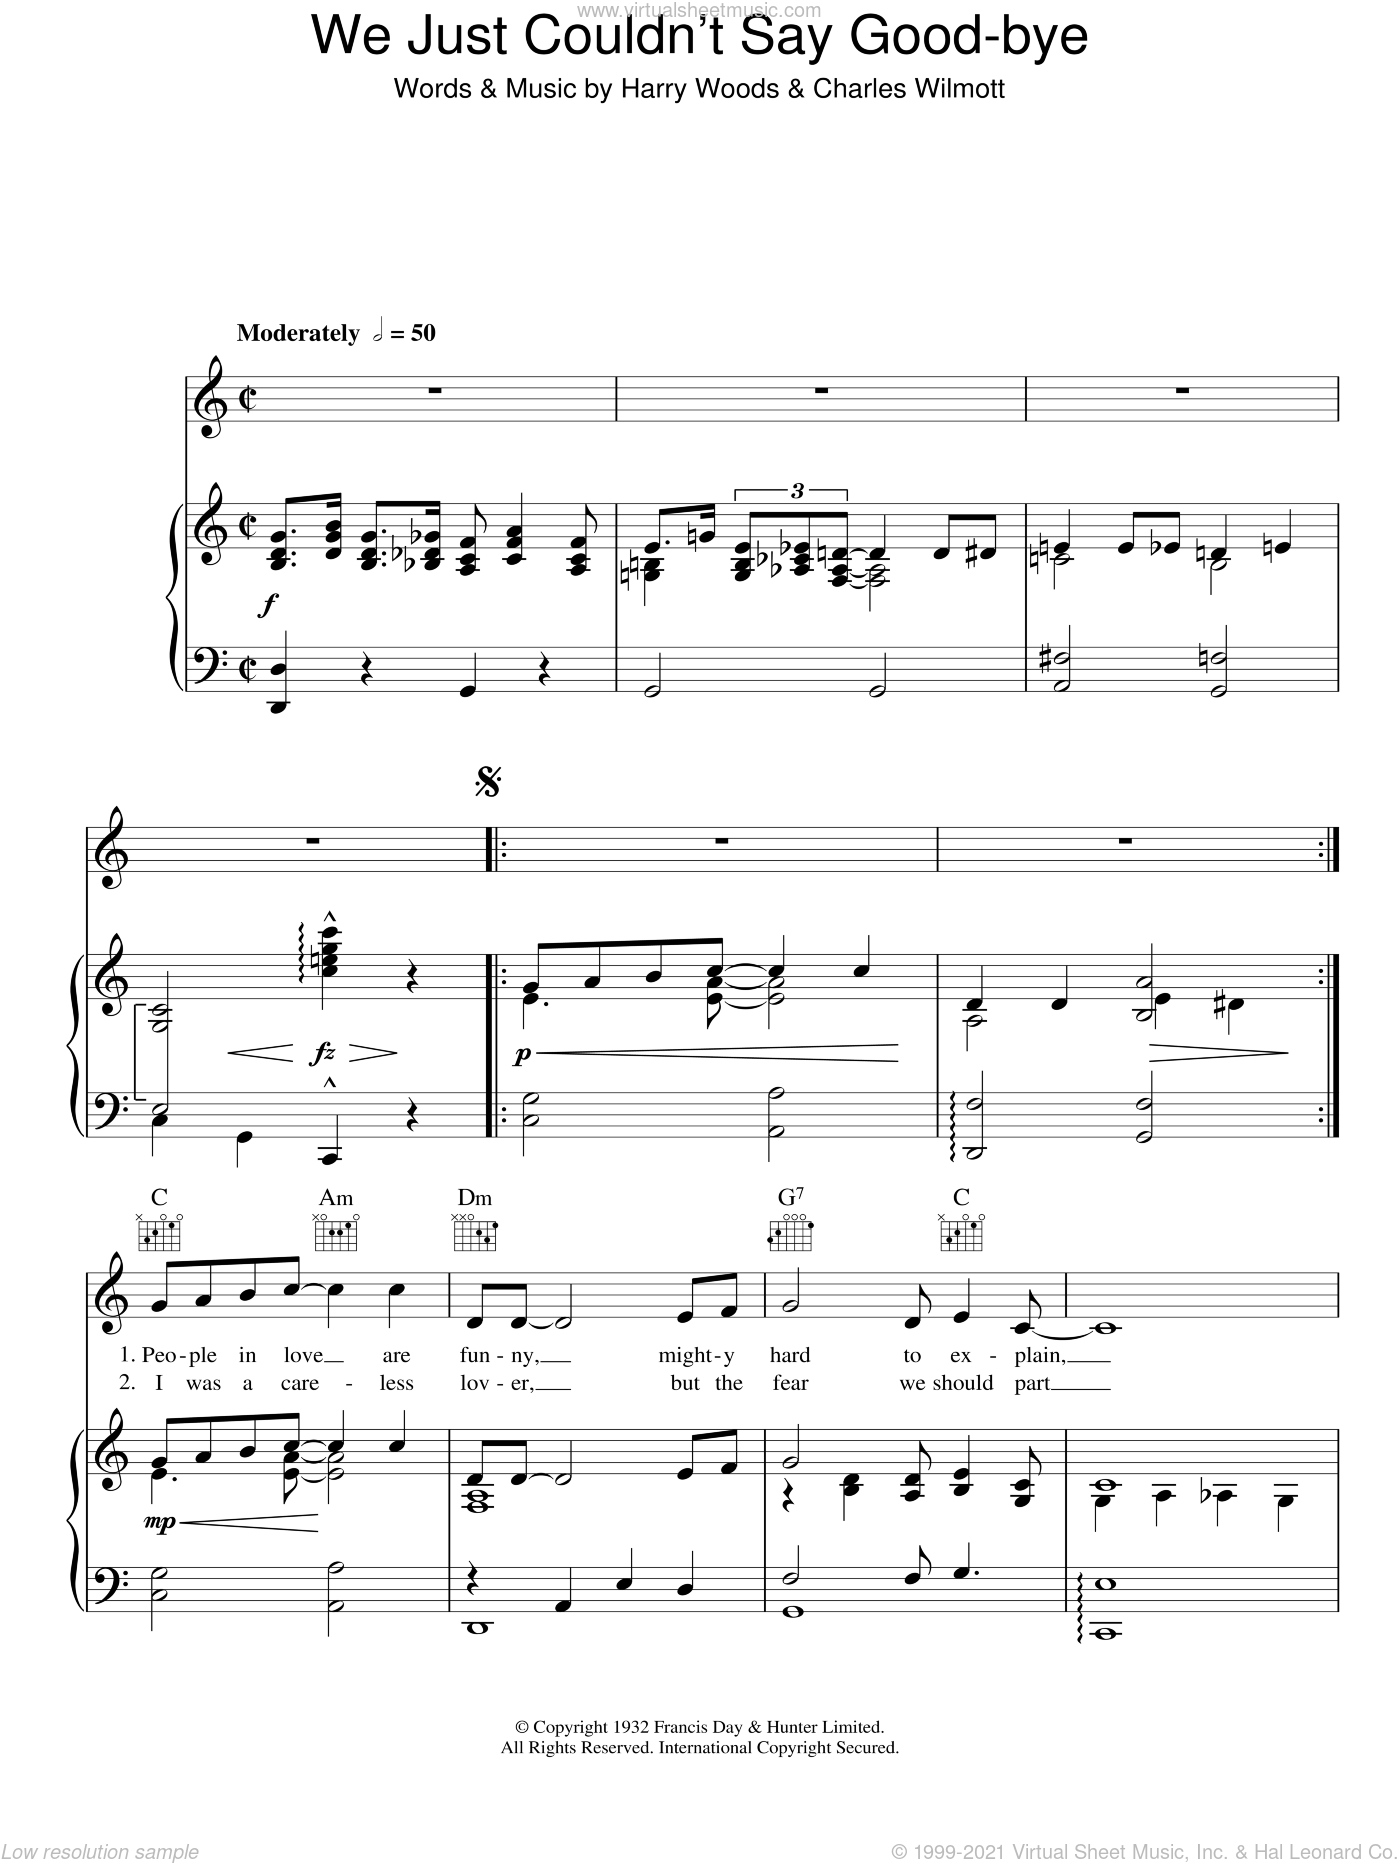 We Just Couldn't Say Goodbye sheet music for voice, piano or guitar by Patti Page, Charles Wilmott and Harry Woods, intermediate skill level